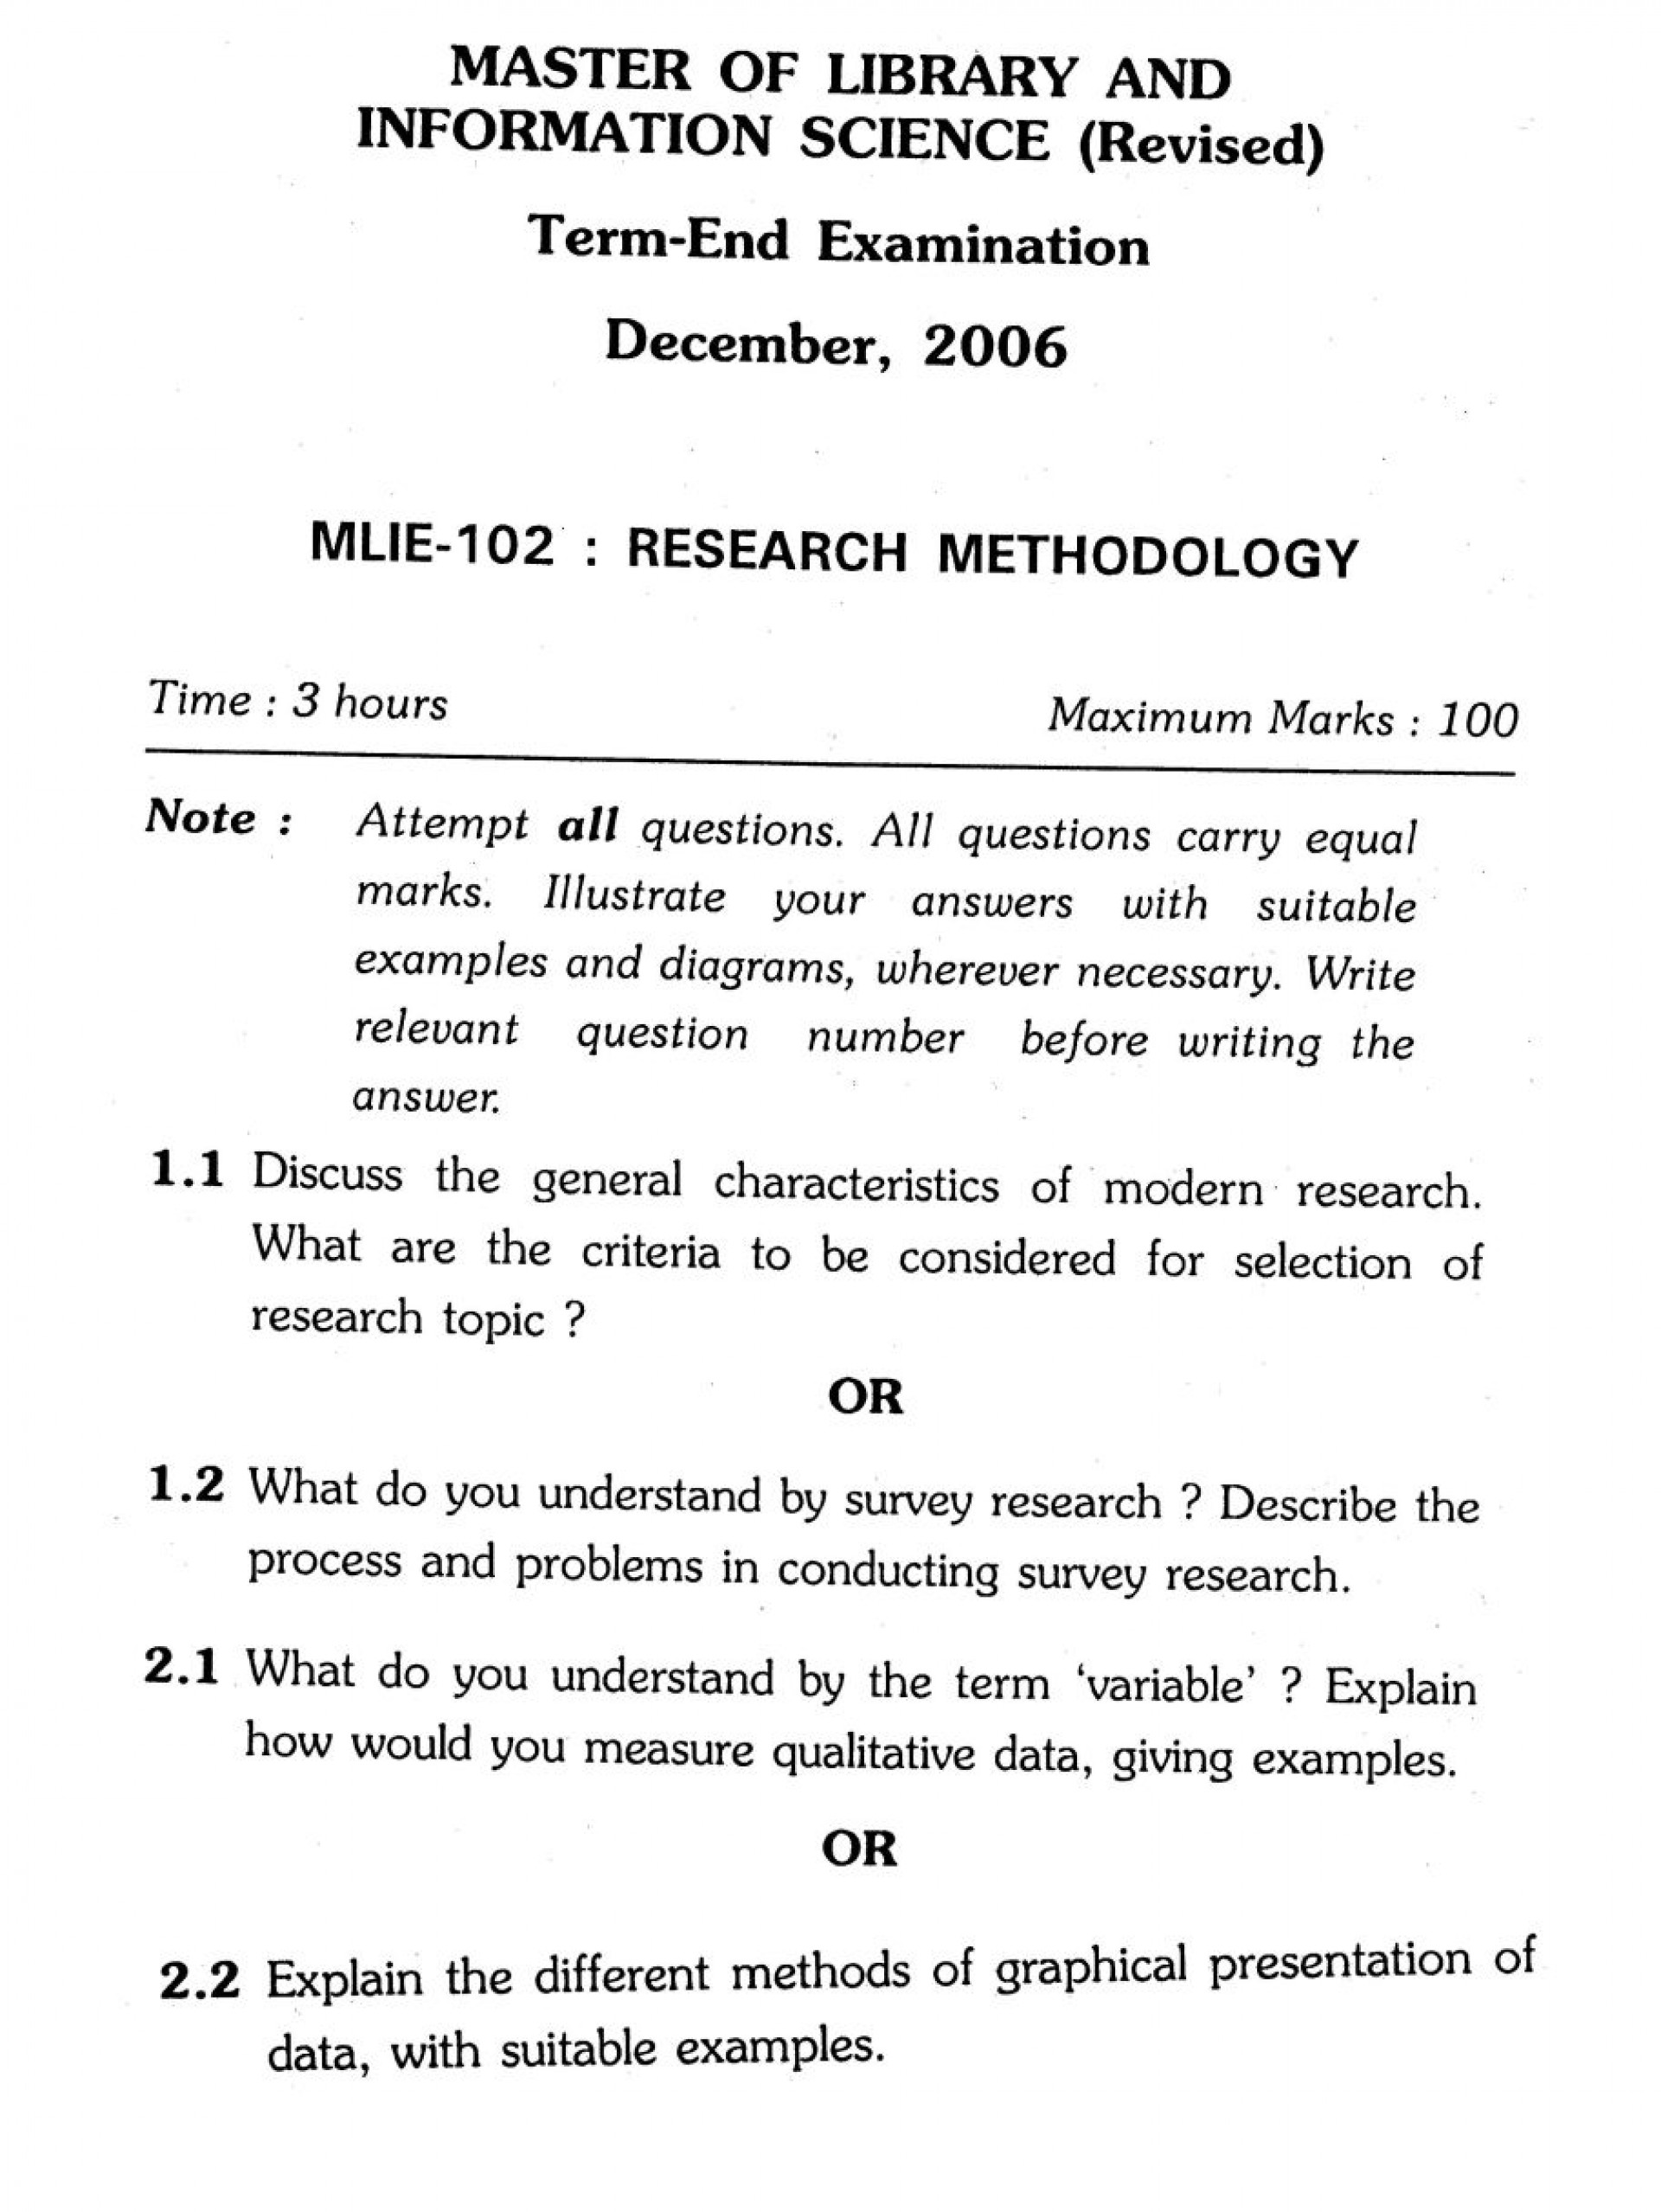 008 Ignou Master Of Library And Information Science Research Methodology Previous Years Questions Example For Unusual Paper Sample Writing Section In Qualitative 1920